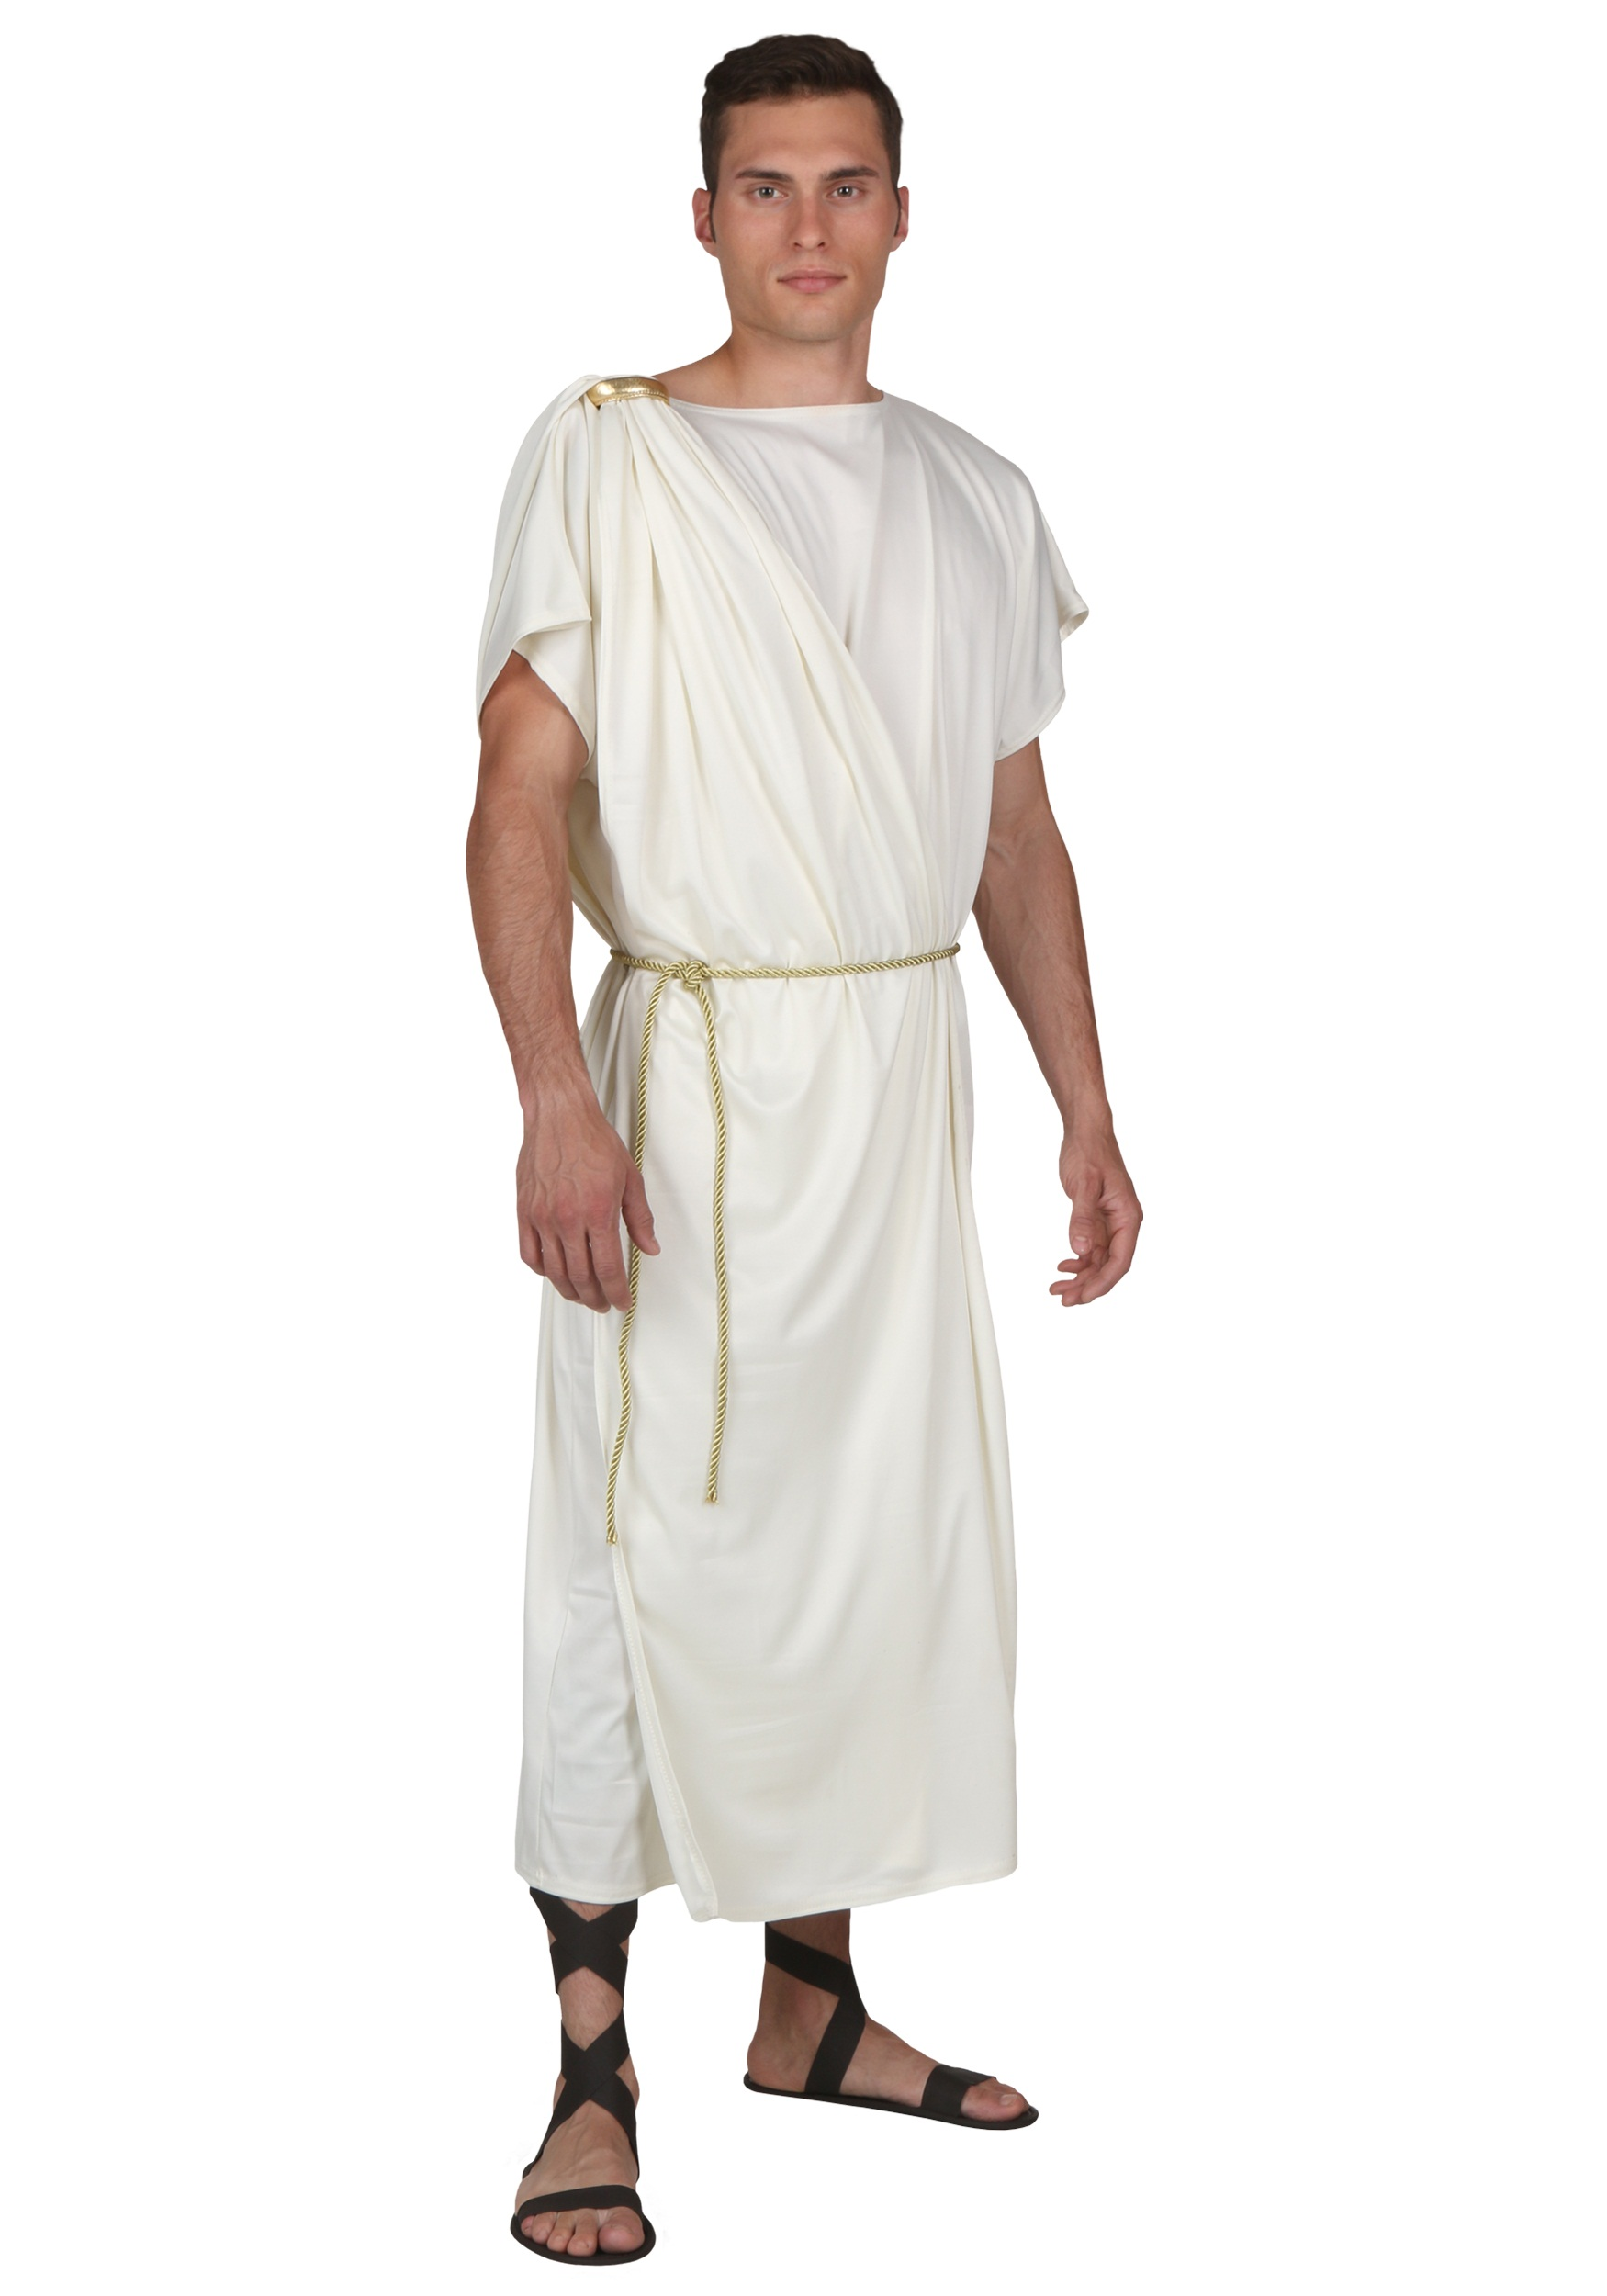 Toga Halloween Costume for Men | Exclusive | Made By Us Costume